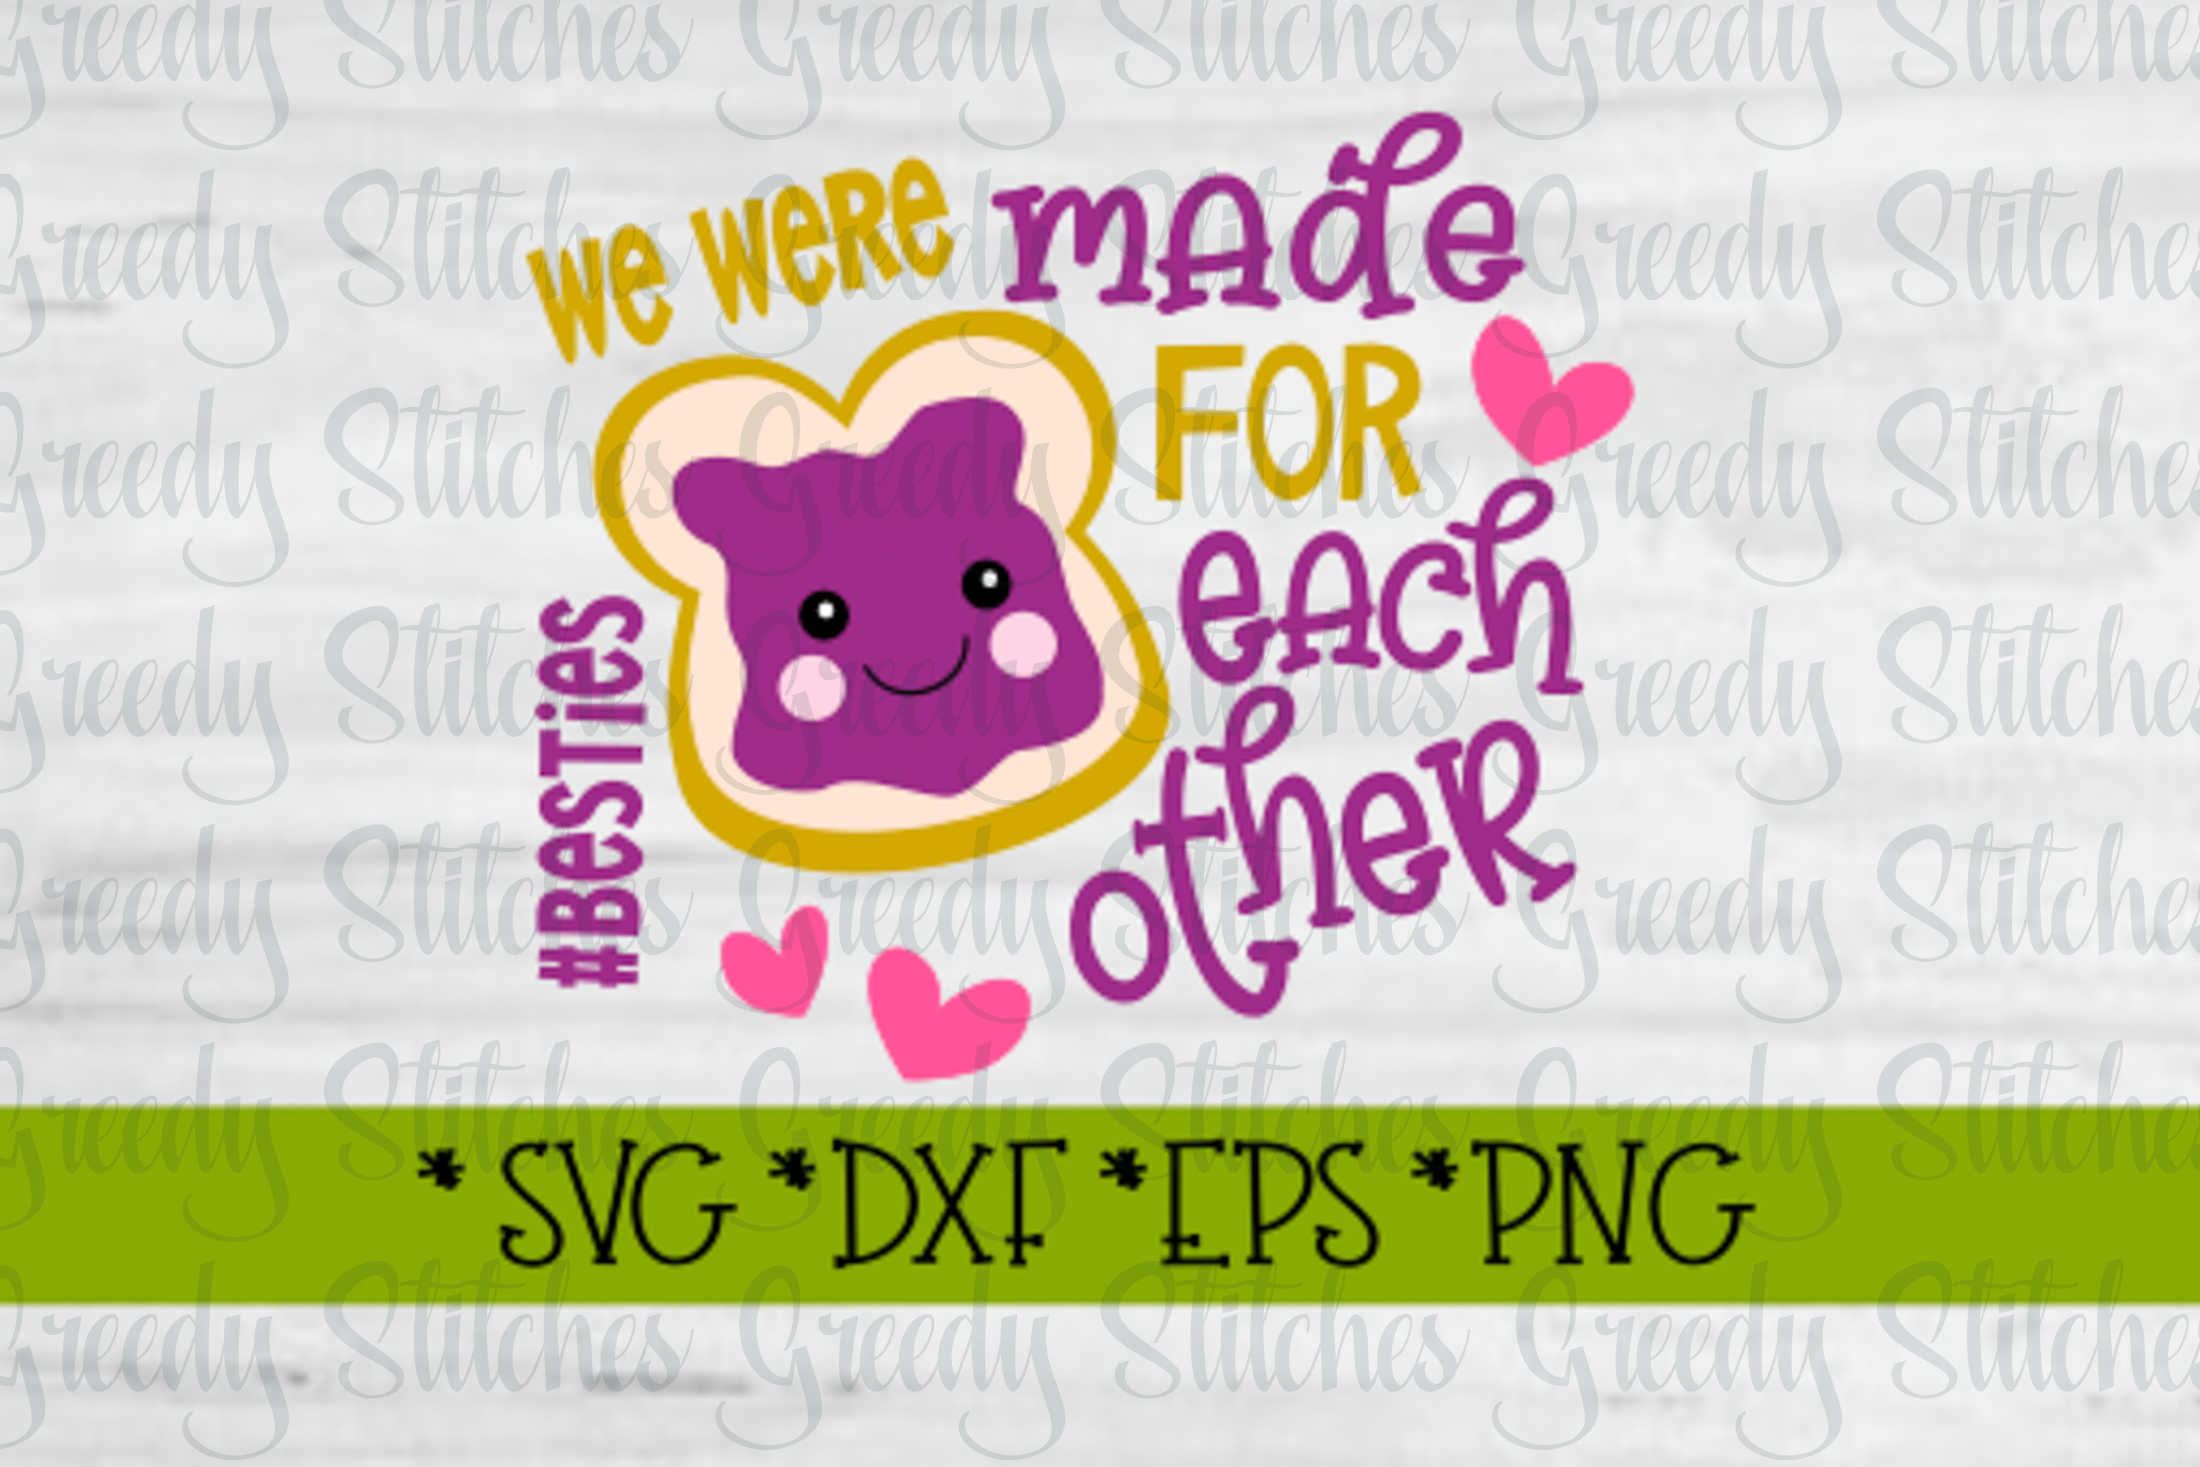 Peanut Butter & Jelly SVG DXF EPS PNG | Best Friends SVG DXF example image 4